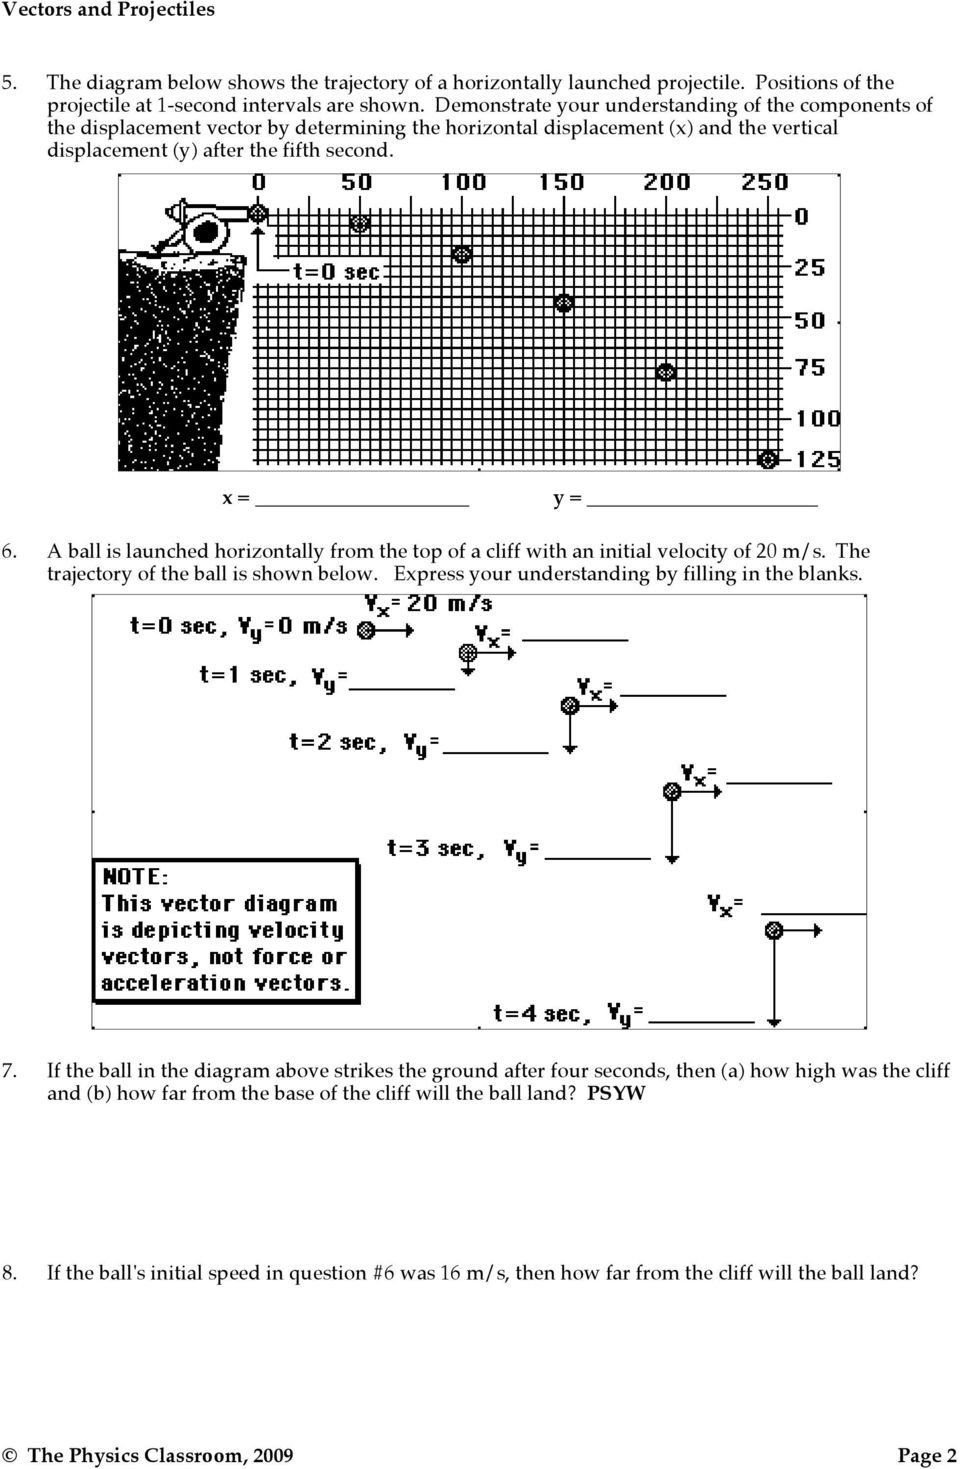 Horizontally Launched Projectile Worksheet Answers Projectile Motion Vectors And Projectiles Pdf Free Dow In 2020 Projectile Motion Worksheets High School Lesson Plans